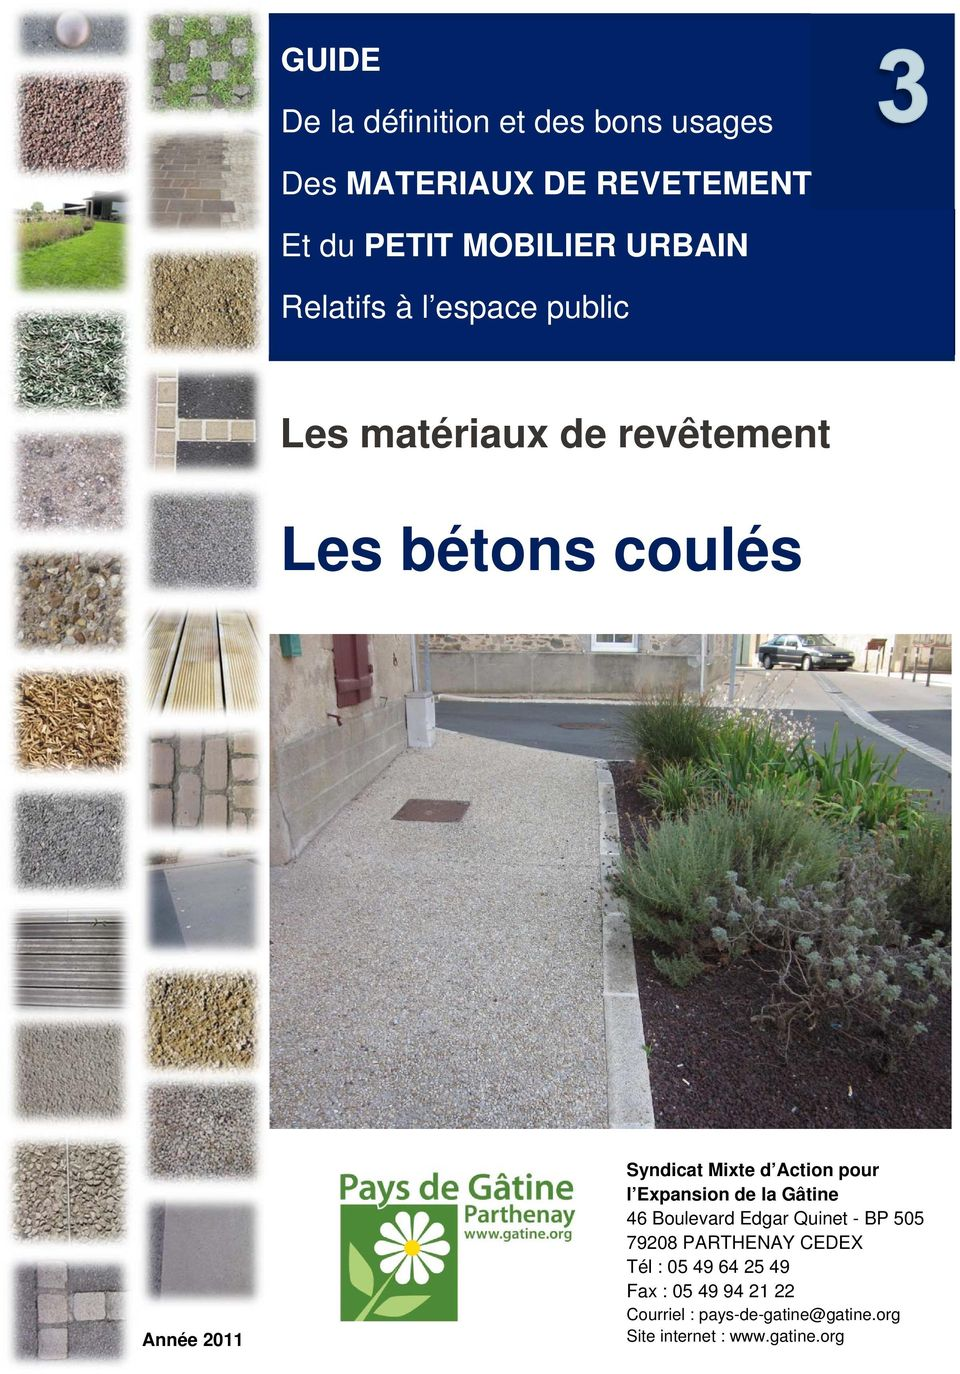 Action pour l Expansion de la Gâtine 46 Boulevard Edgar Quinet - BP 505 79208 PARTHENAY CEDEX Tél :